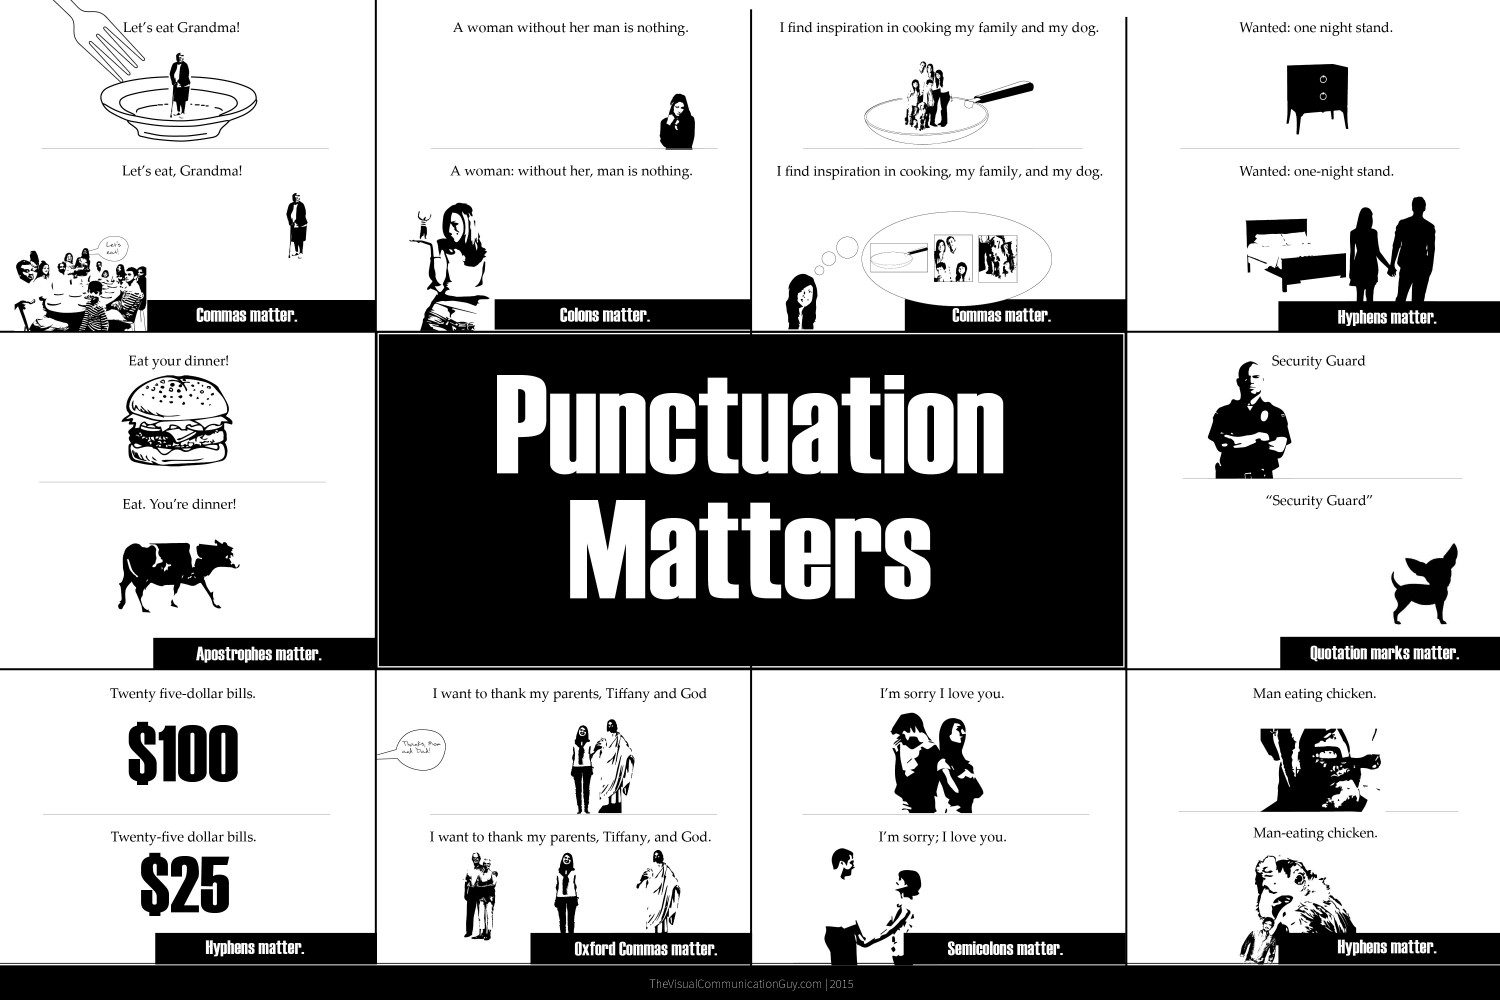 Punctuation Matters: 10 Hilarious Proofs that Usage Makes a Big Difference Infographic